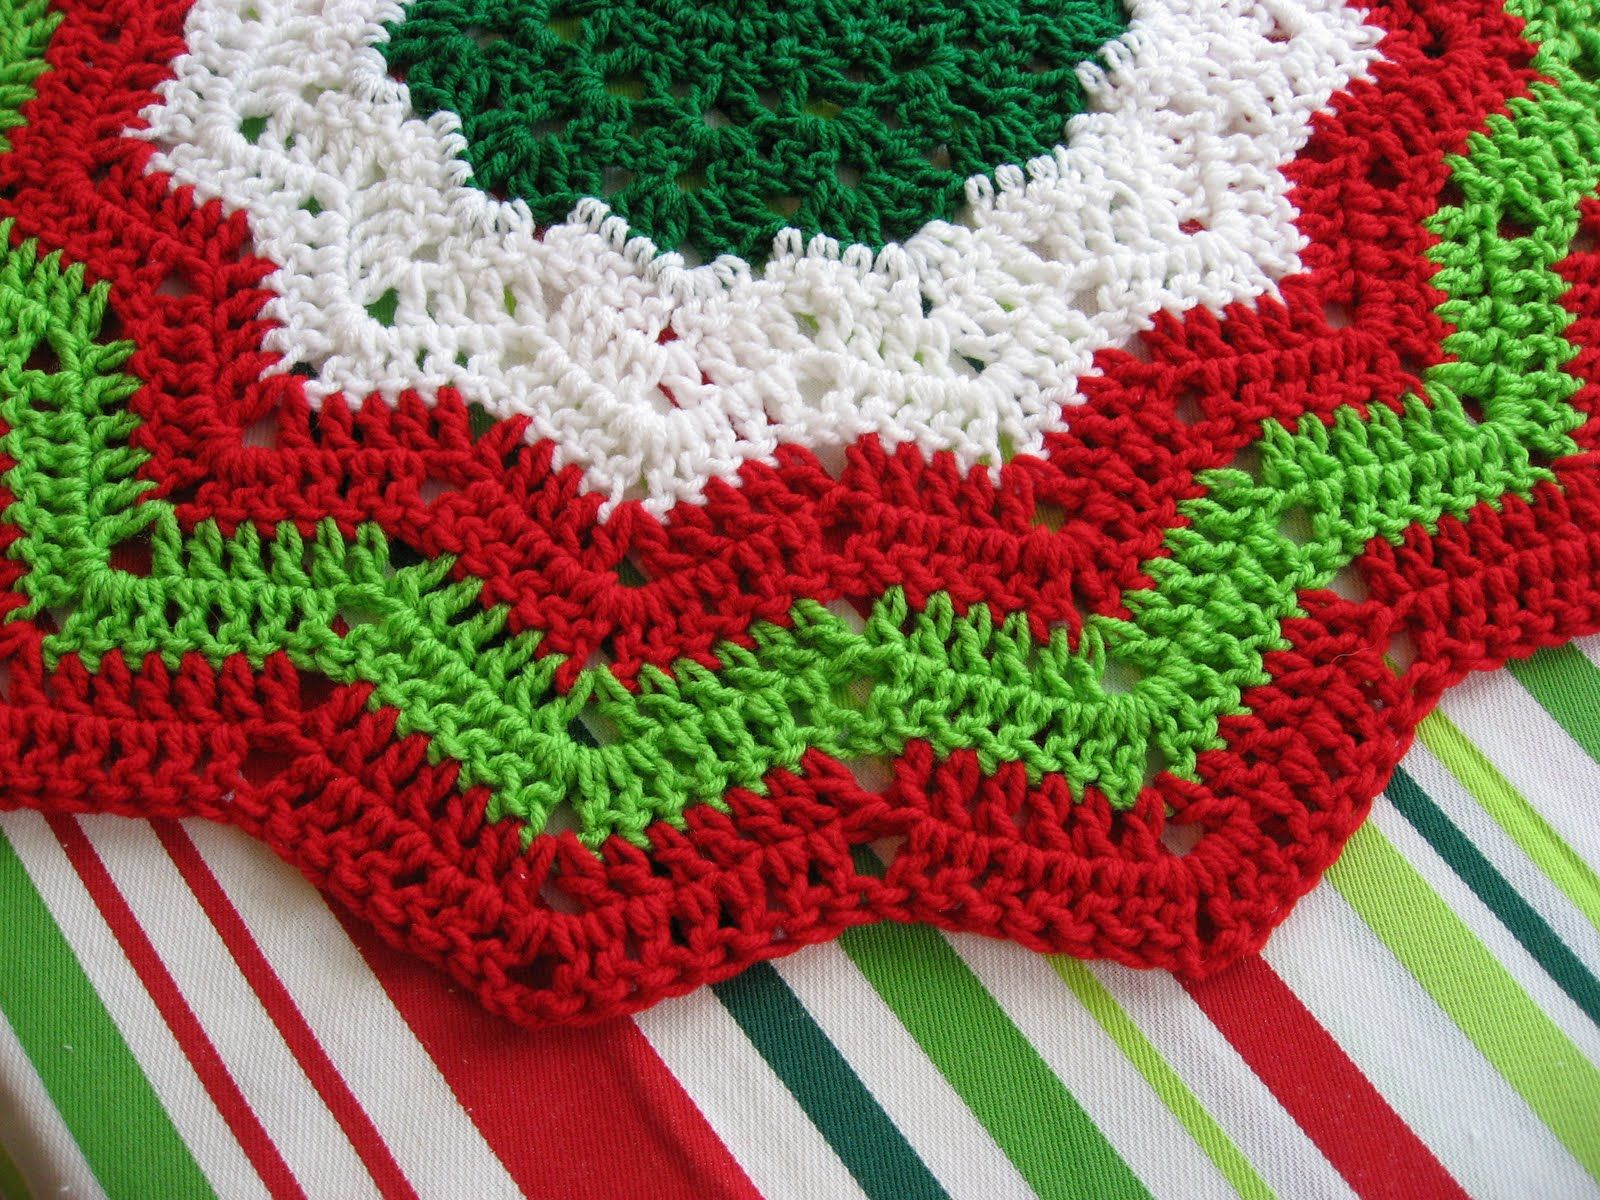 Crochet Patterns Page 63 Crochet Tree Skirt Crochet Xmas Christmas Tree Skirts Patterns